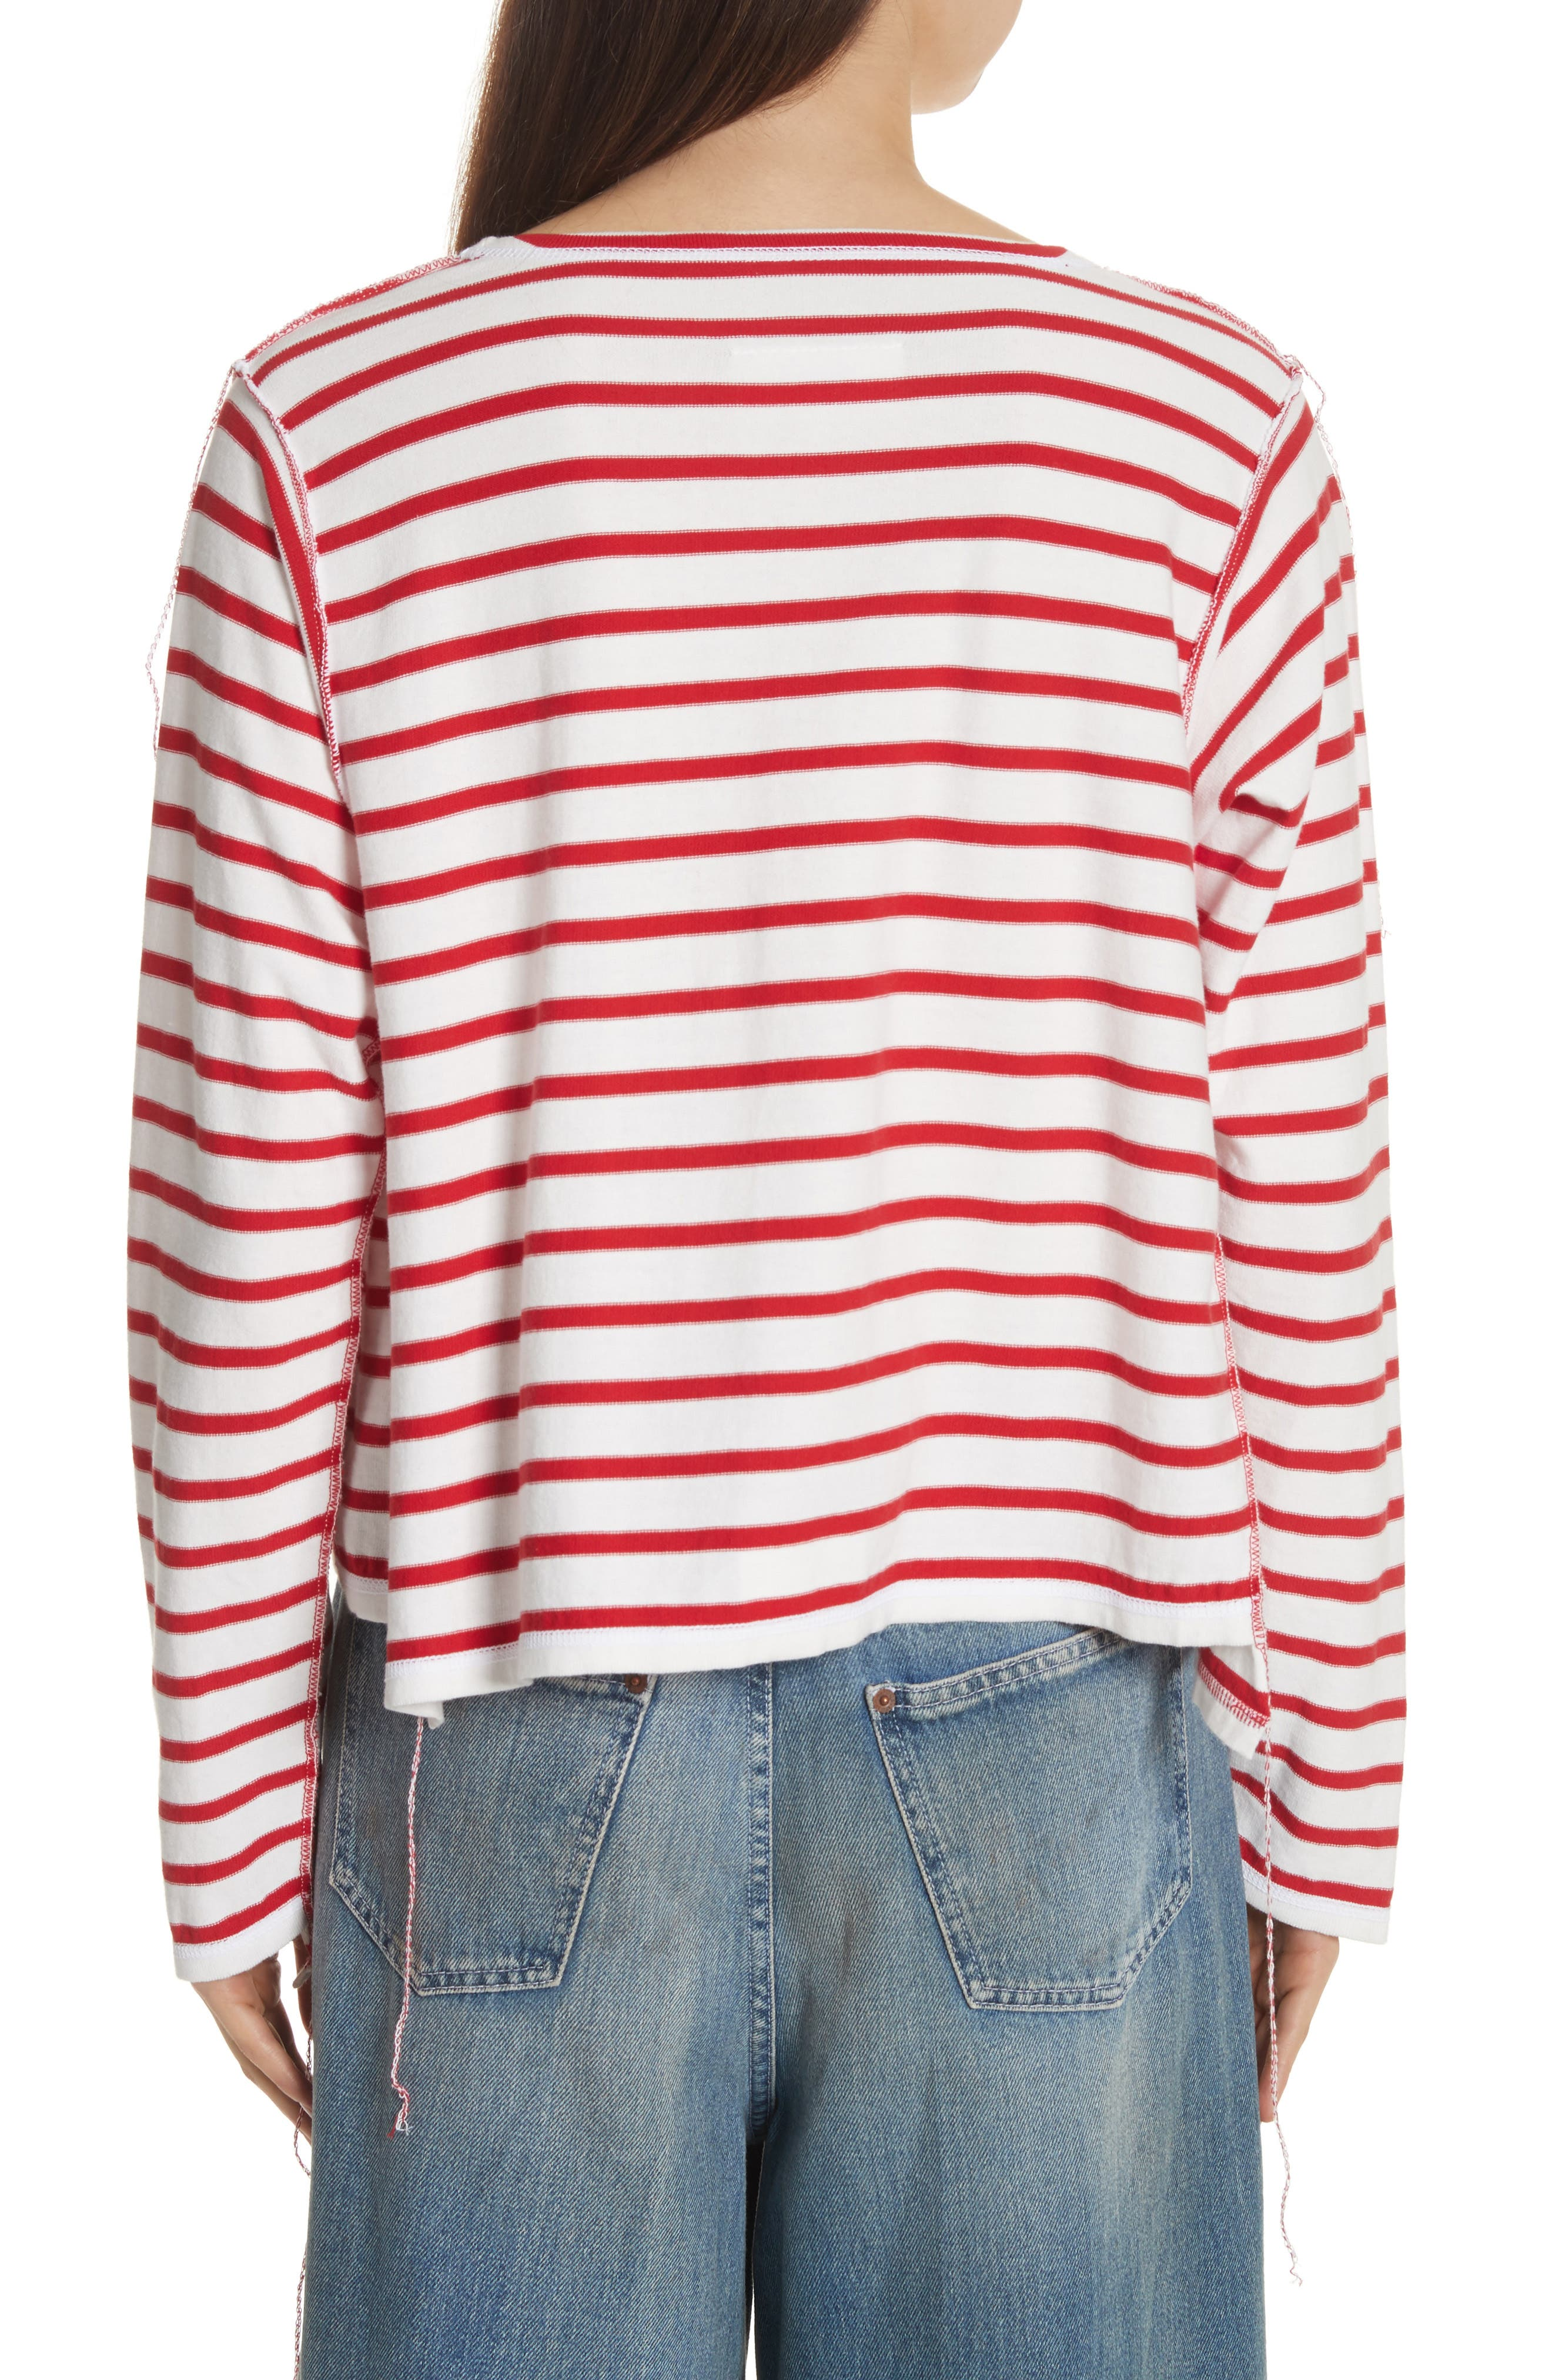 Inside Out Stripe Sweater,                             Alternate thumbnail 2, color,                             600